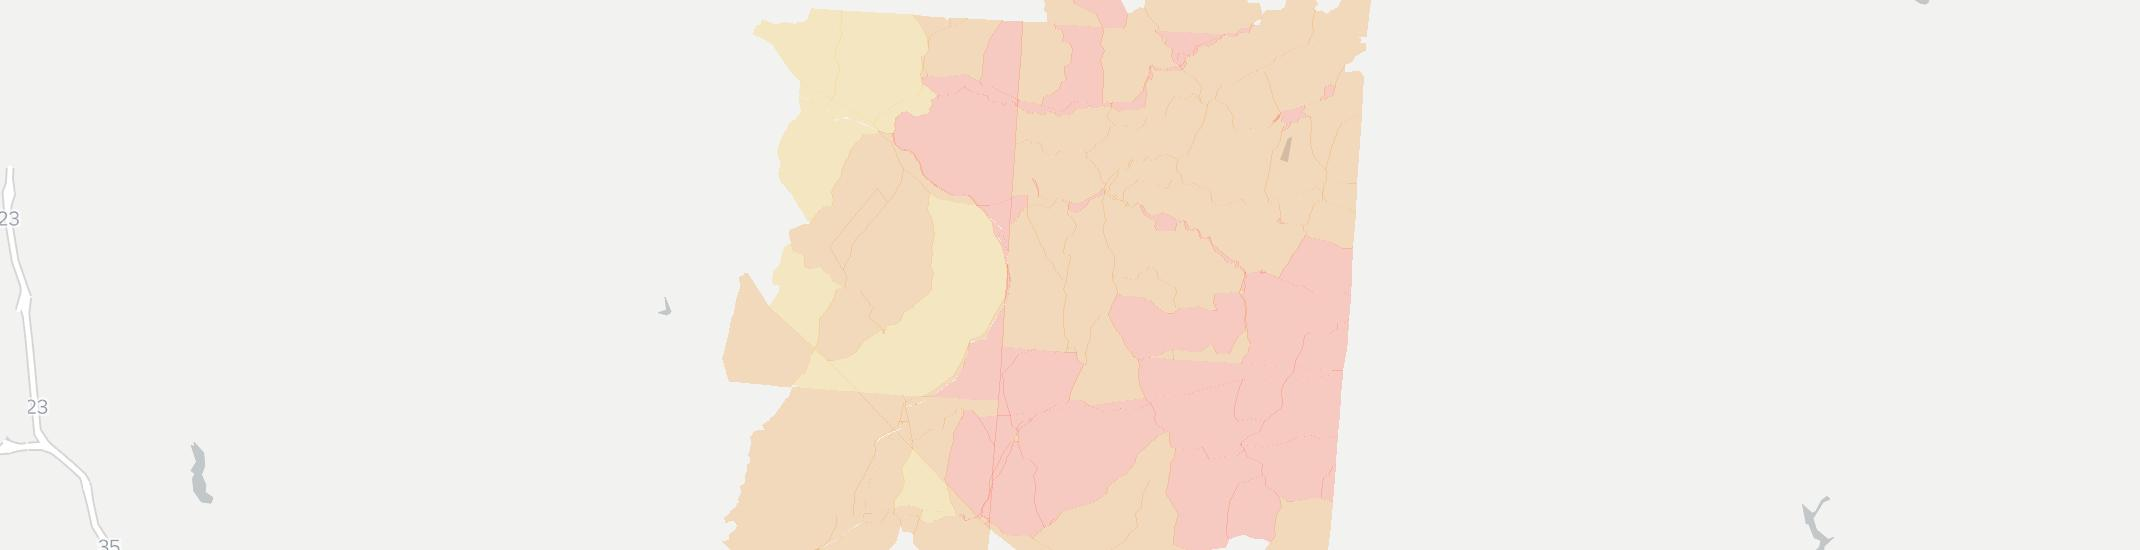 South Bloomingville Internet Competition Map. Click for interactive map.